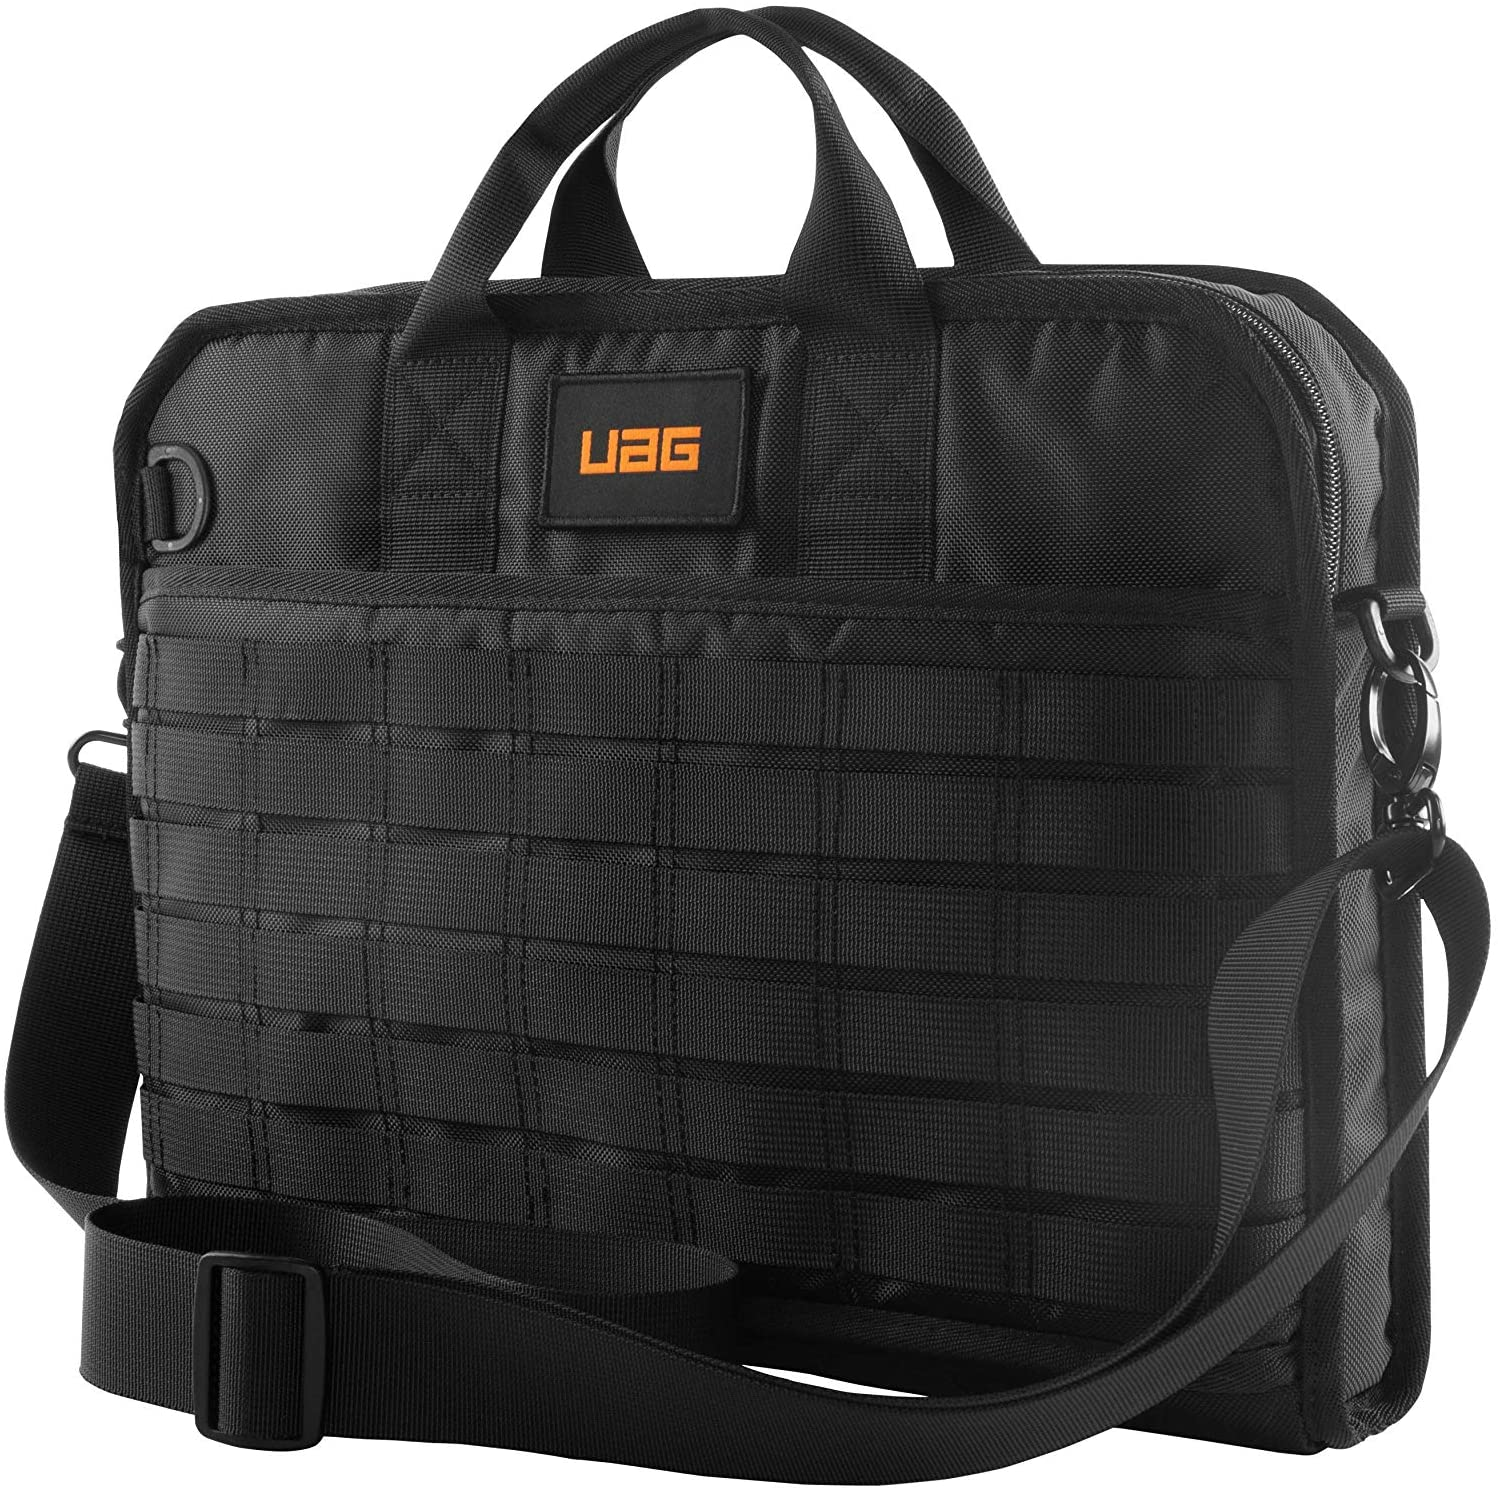 URBAN ARMOR GEAR UAG Tactical 13-inch Slim Brief, fits Most Devices up to 13-inch to 14-inch, Rugged Protective Slim Secure Laptop Tablet Carrying Bag with Shoulder Strap, Black